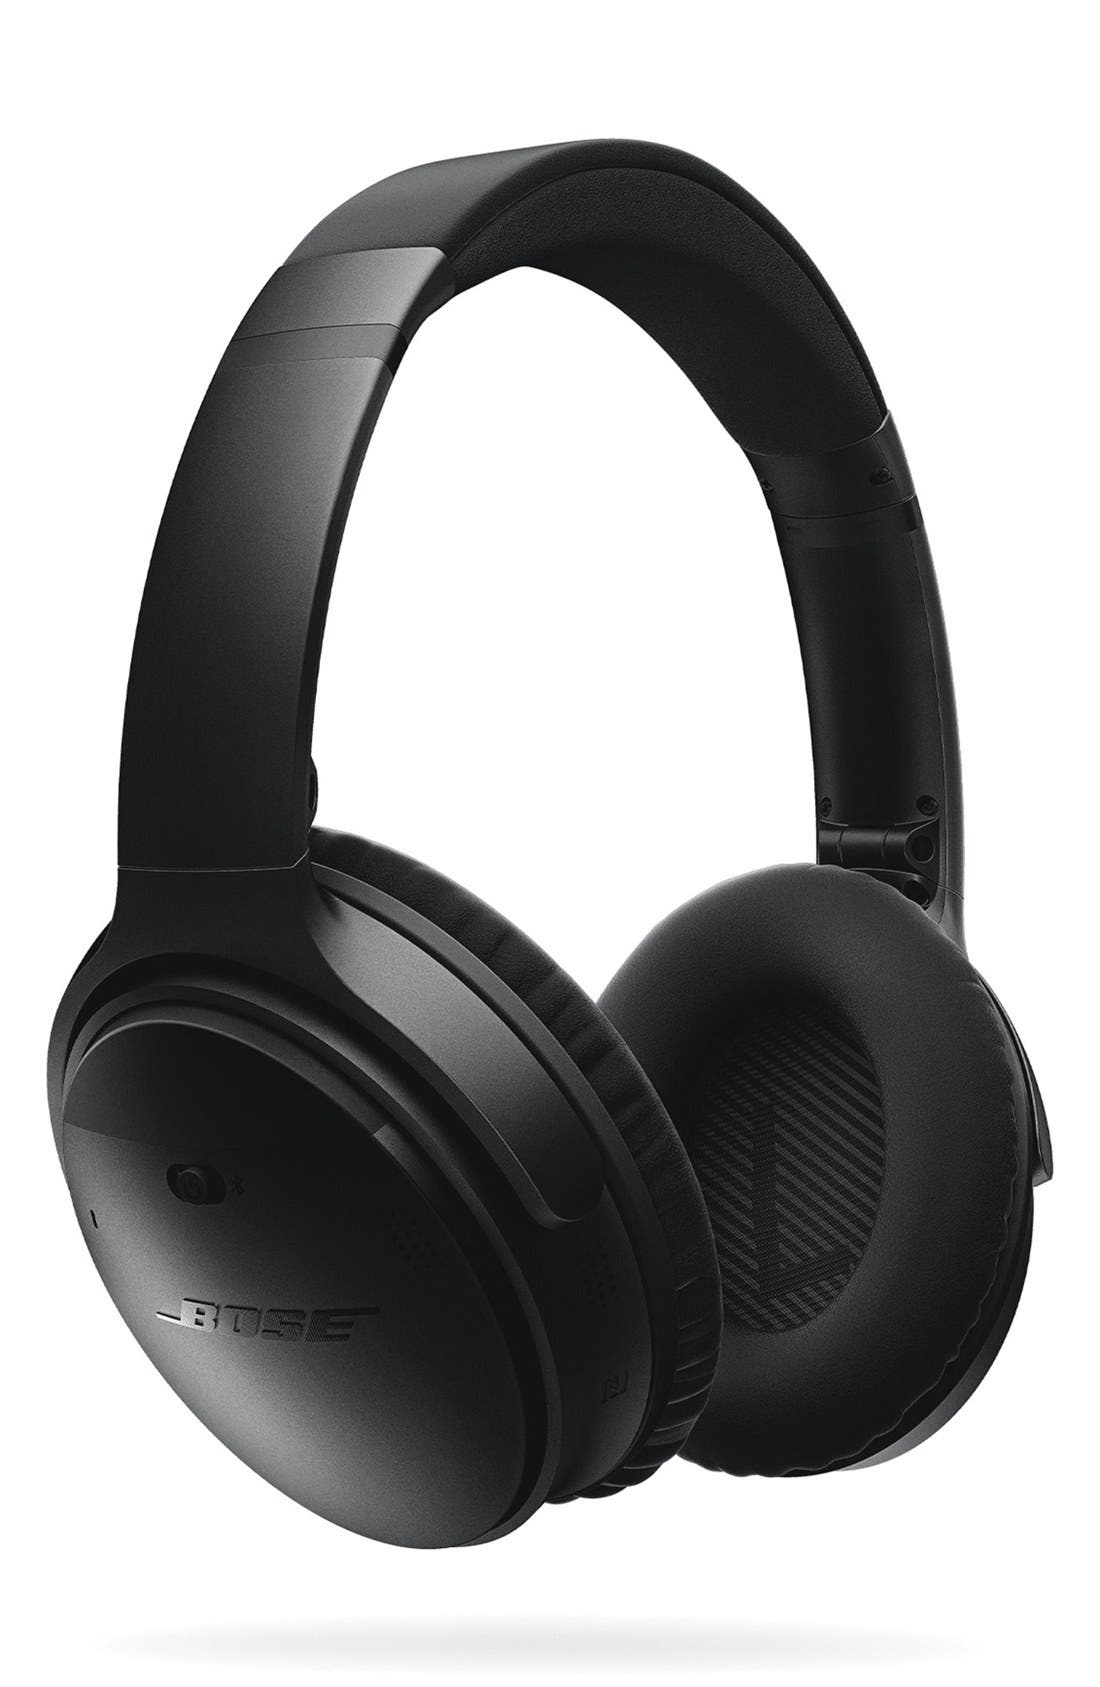 Alternate Image 1 Selected - Bose® QuietComfort® 35 Acoustic Noise Cancelling® Bluetooth® Headphones